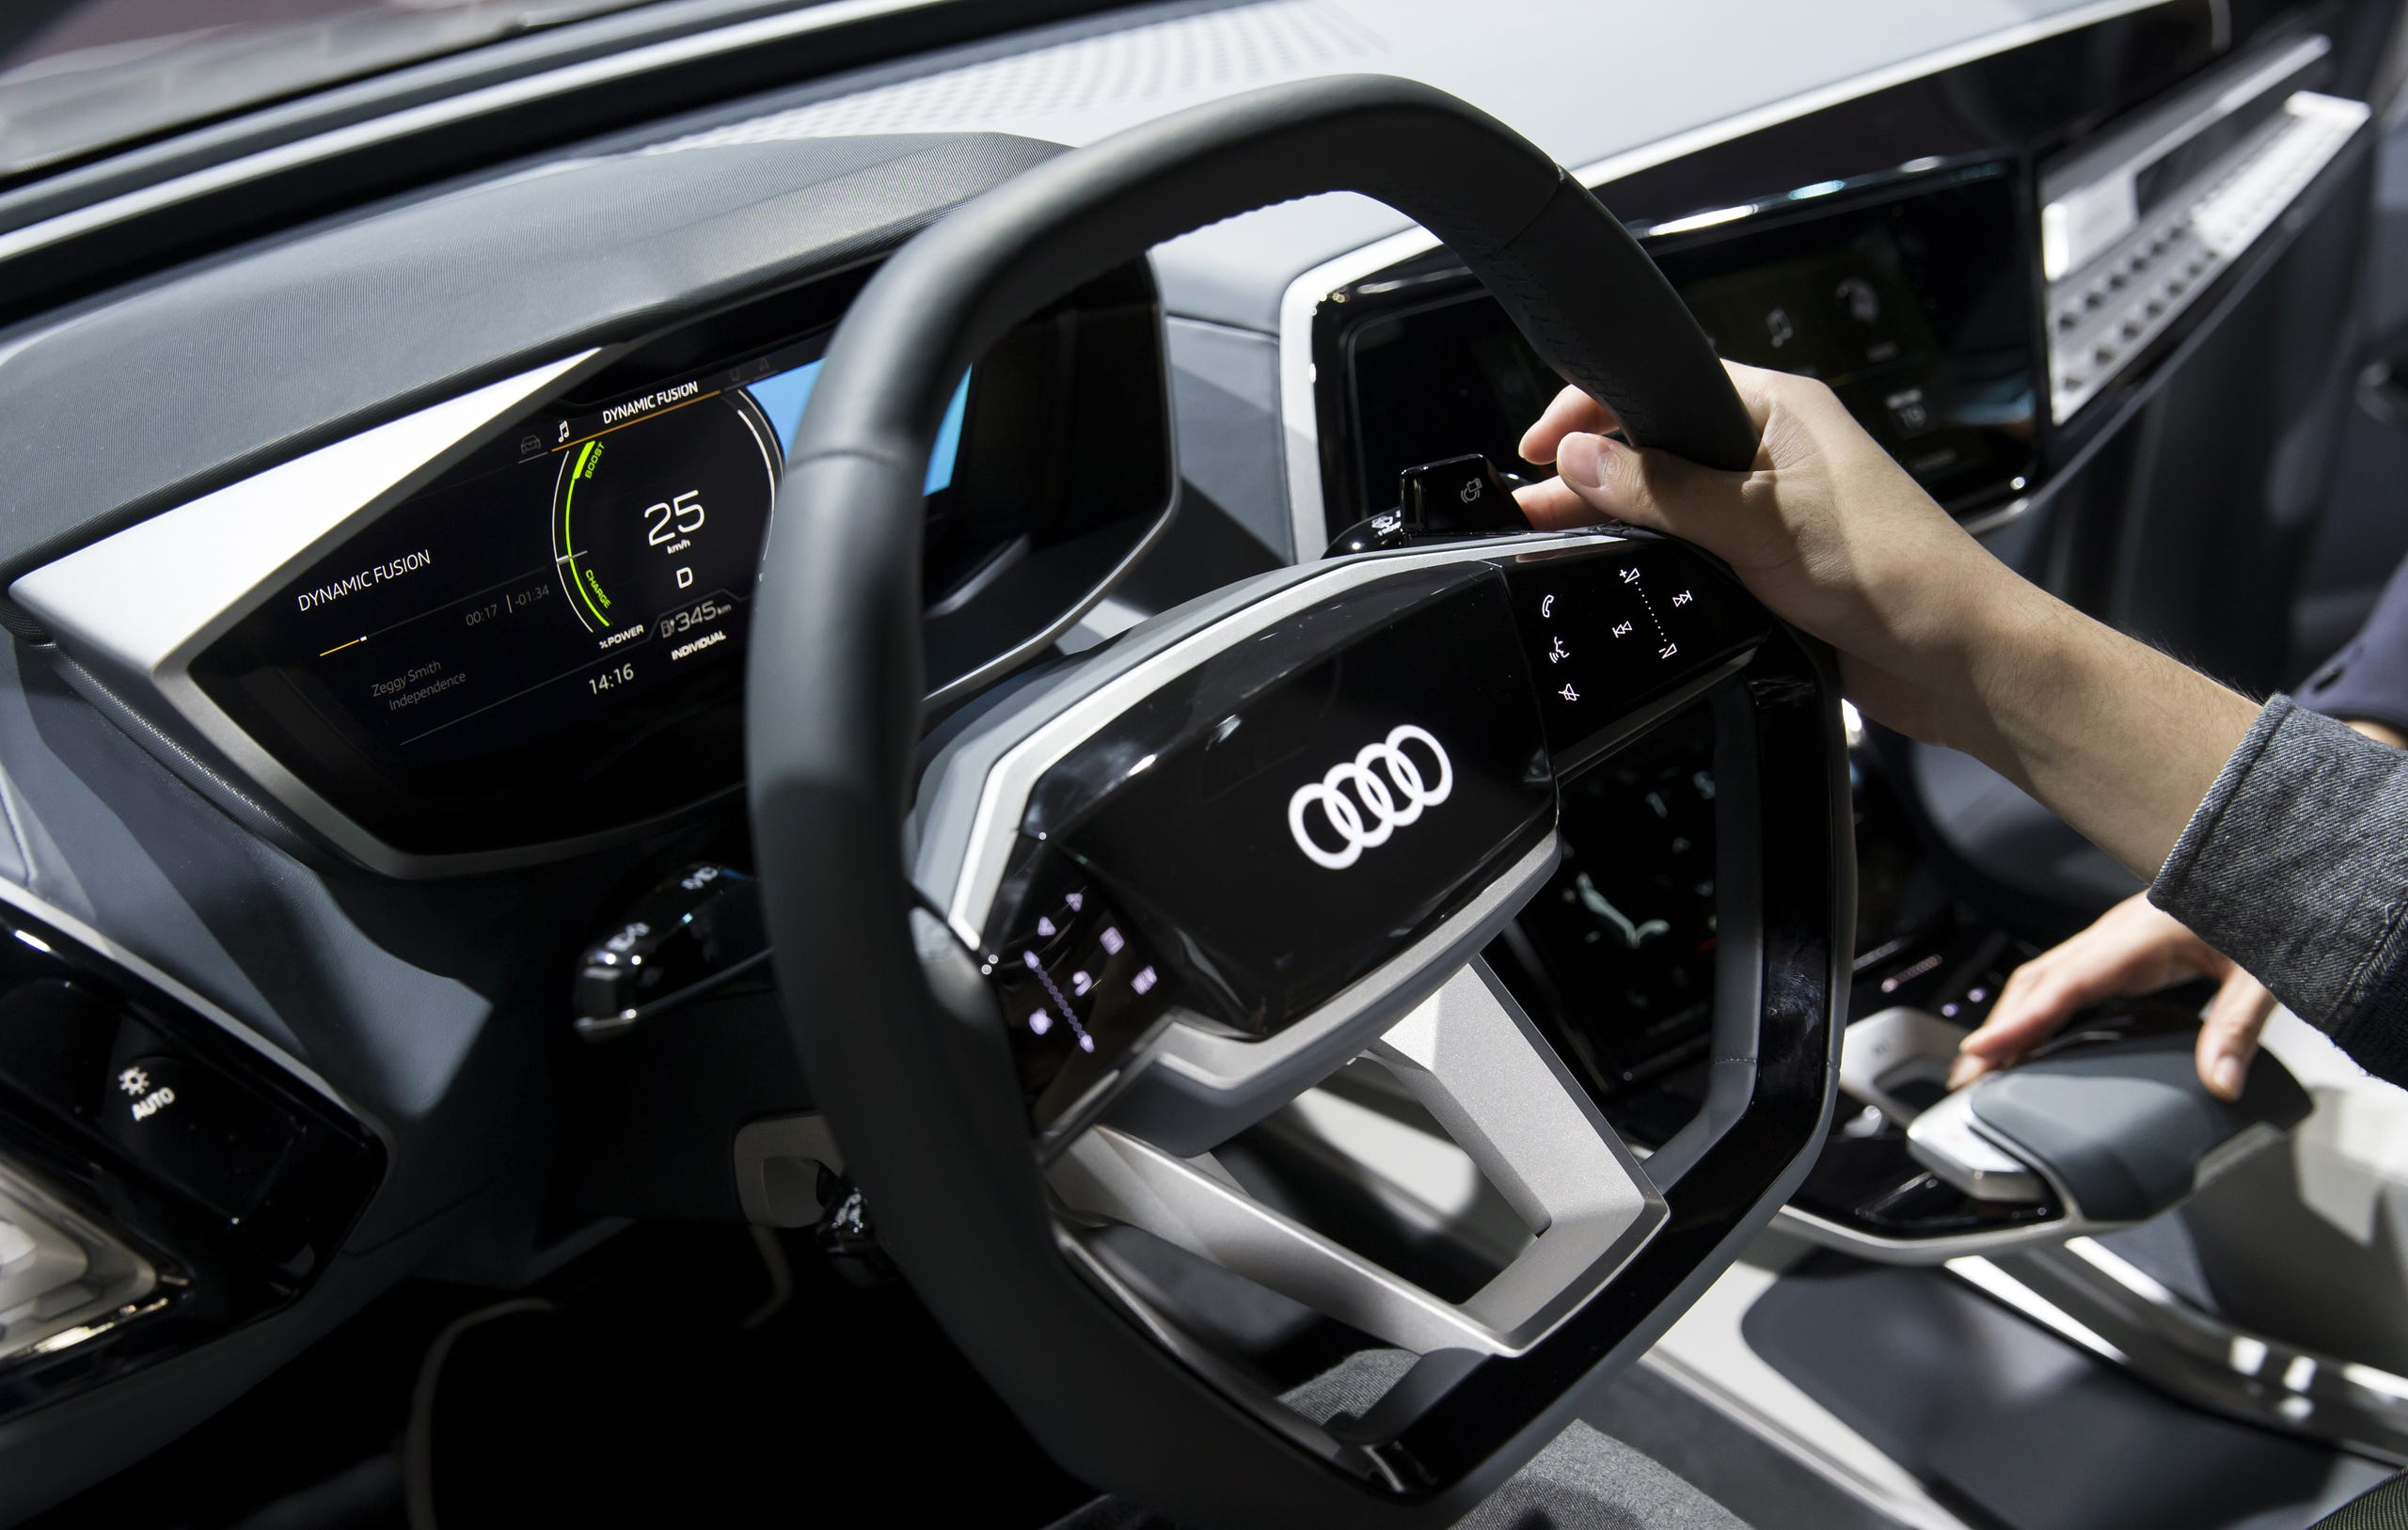 A visitor holds a steering wheel of the Audi Elaine vehicle in the Audi AG booth during the Tokyo Motor Show at Tokyo Big Sight on Oct. 25, 2017 in Tokyo, Japan.